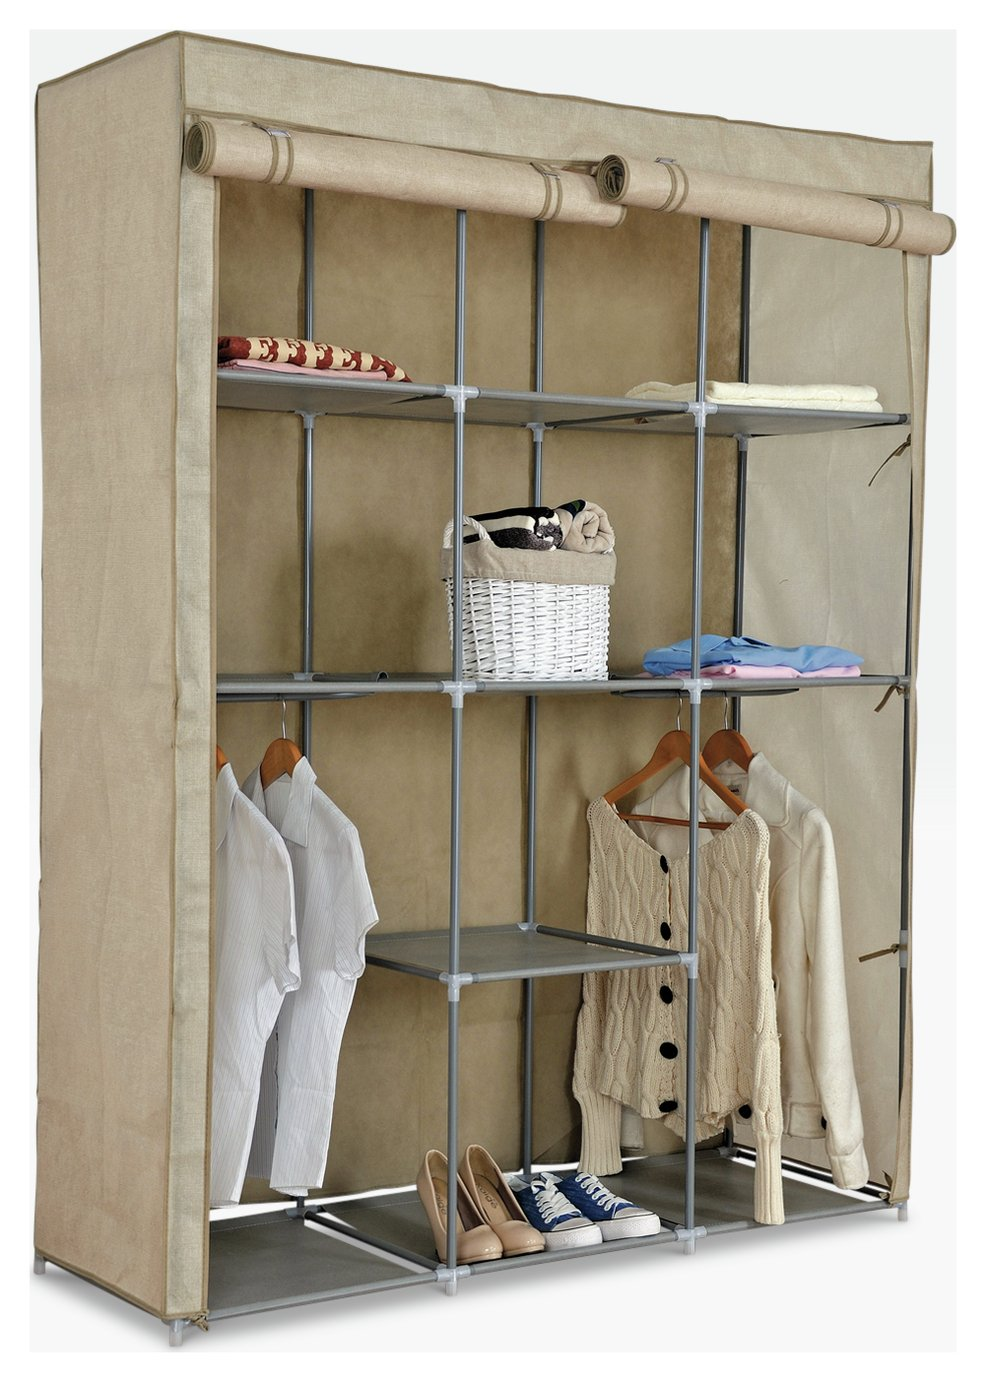 home double modular metal framed fabric wardrobe  jute.